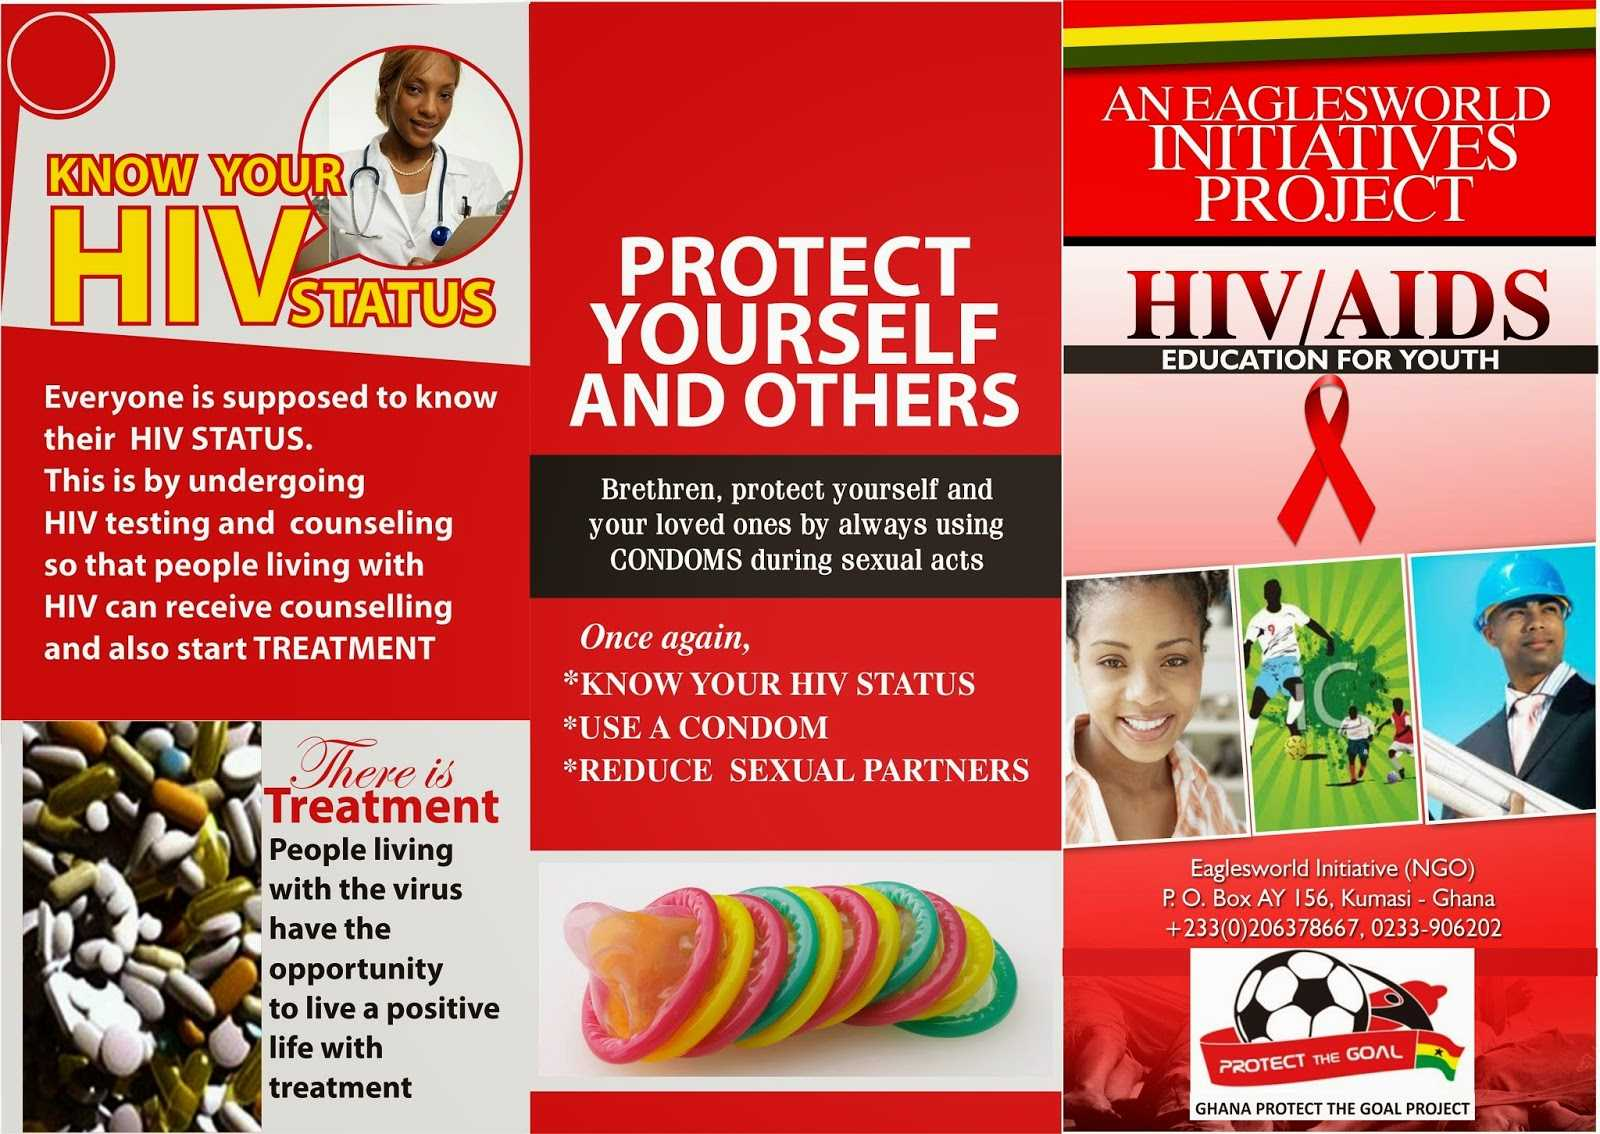 8 Best Photos Of Hiv Brochure Template - Hiv Aids Brochure Within Hiv Aids Brochure Templates